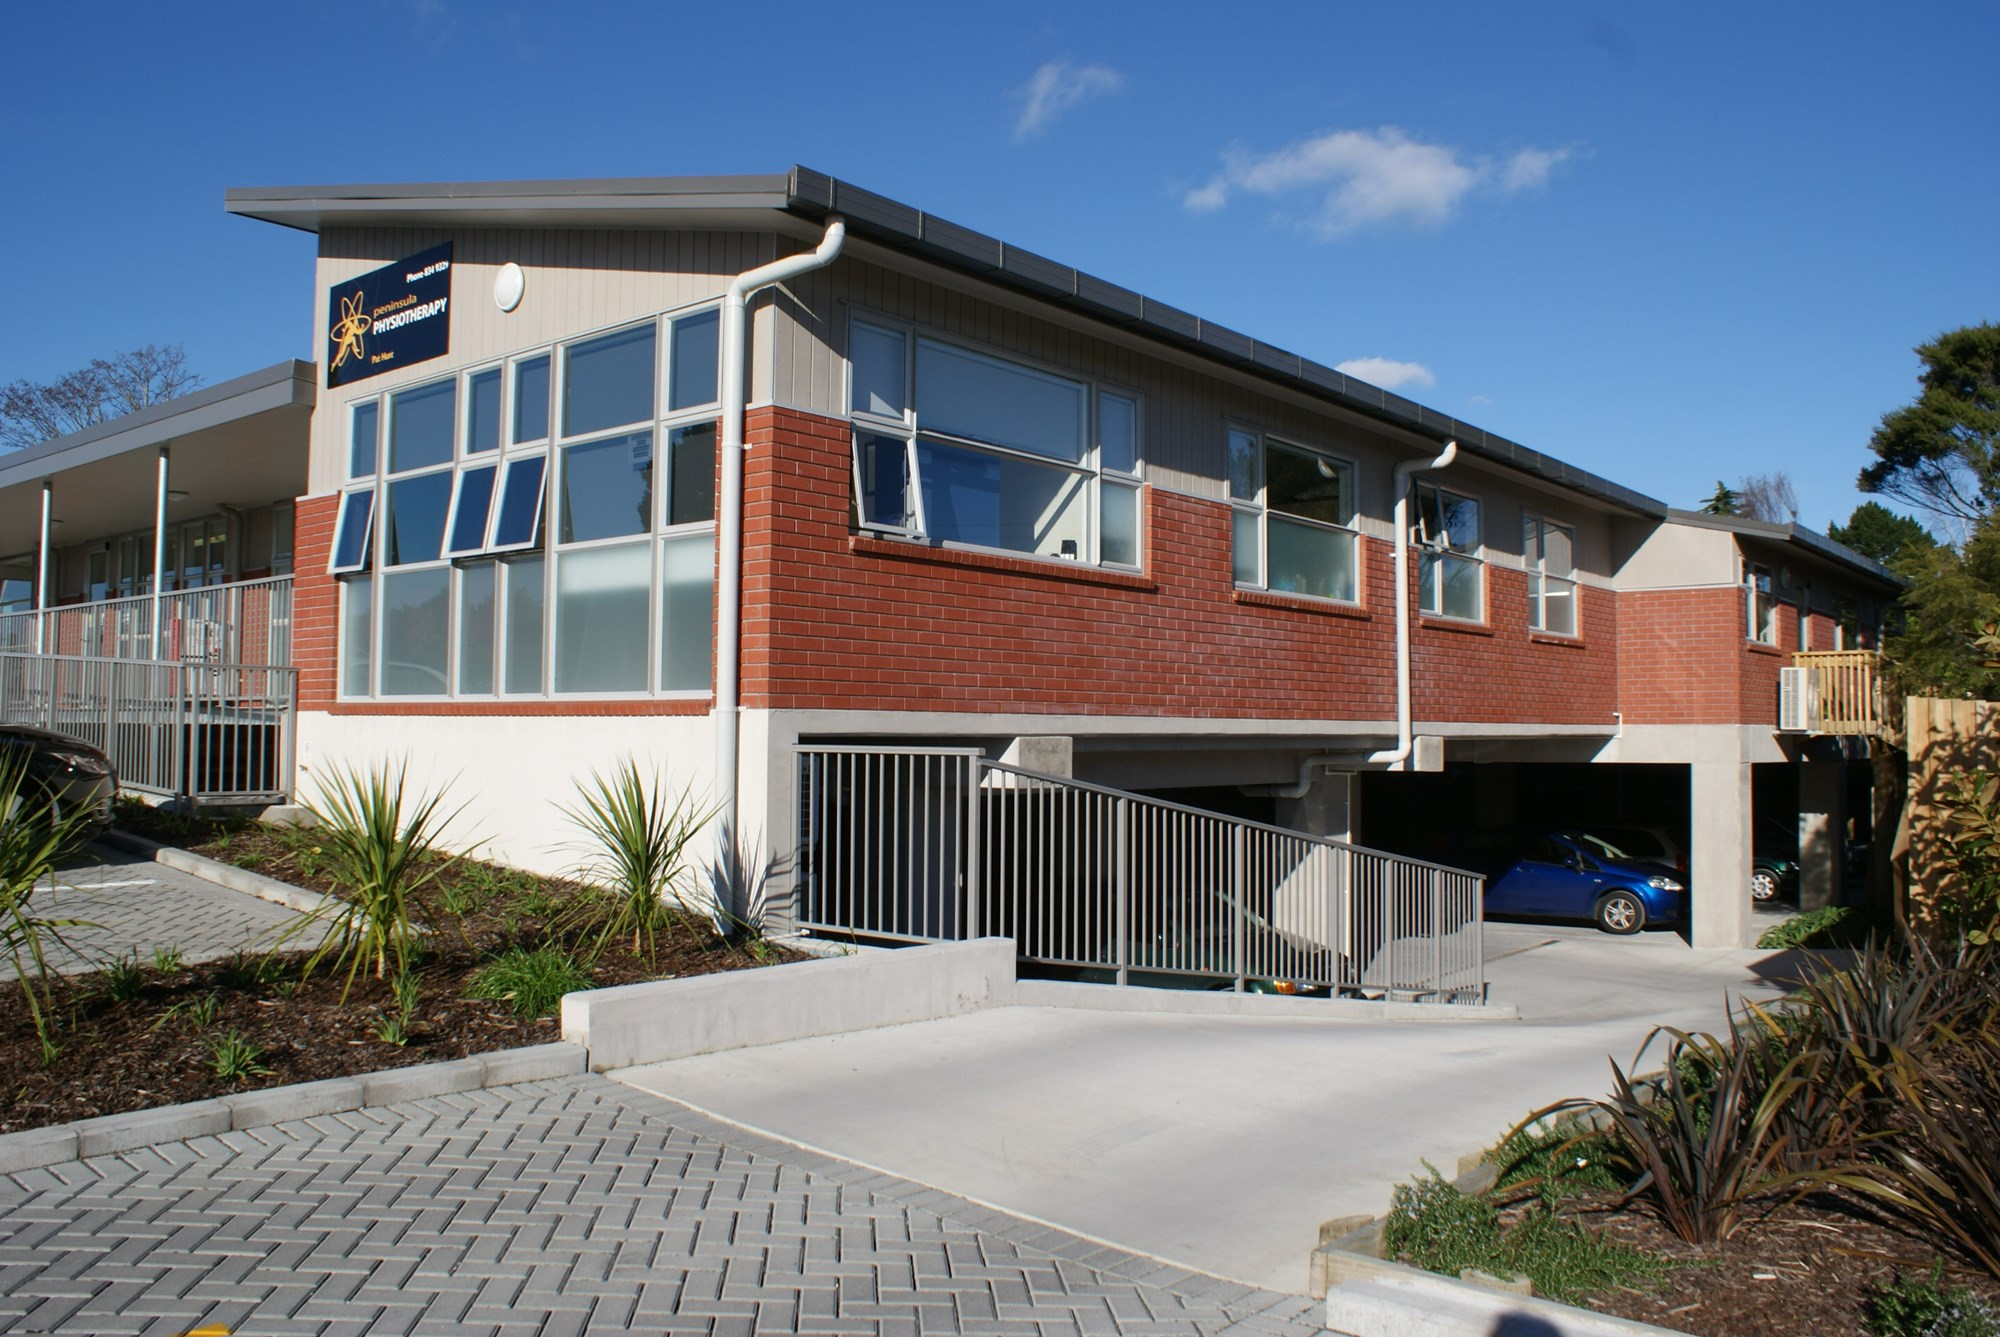 Medical Centre - Te Atatu - Te Atatu Peninsula, Waitakere City (2)